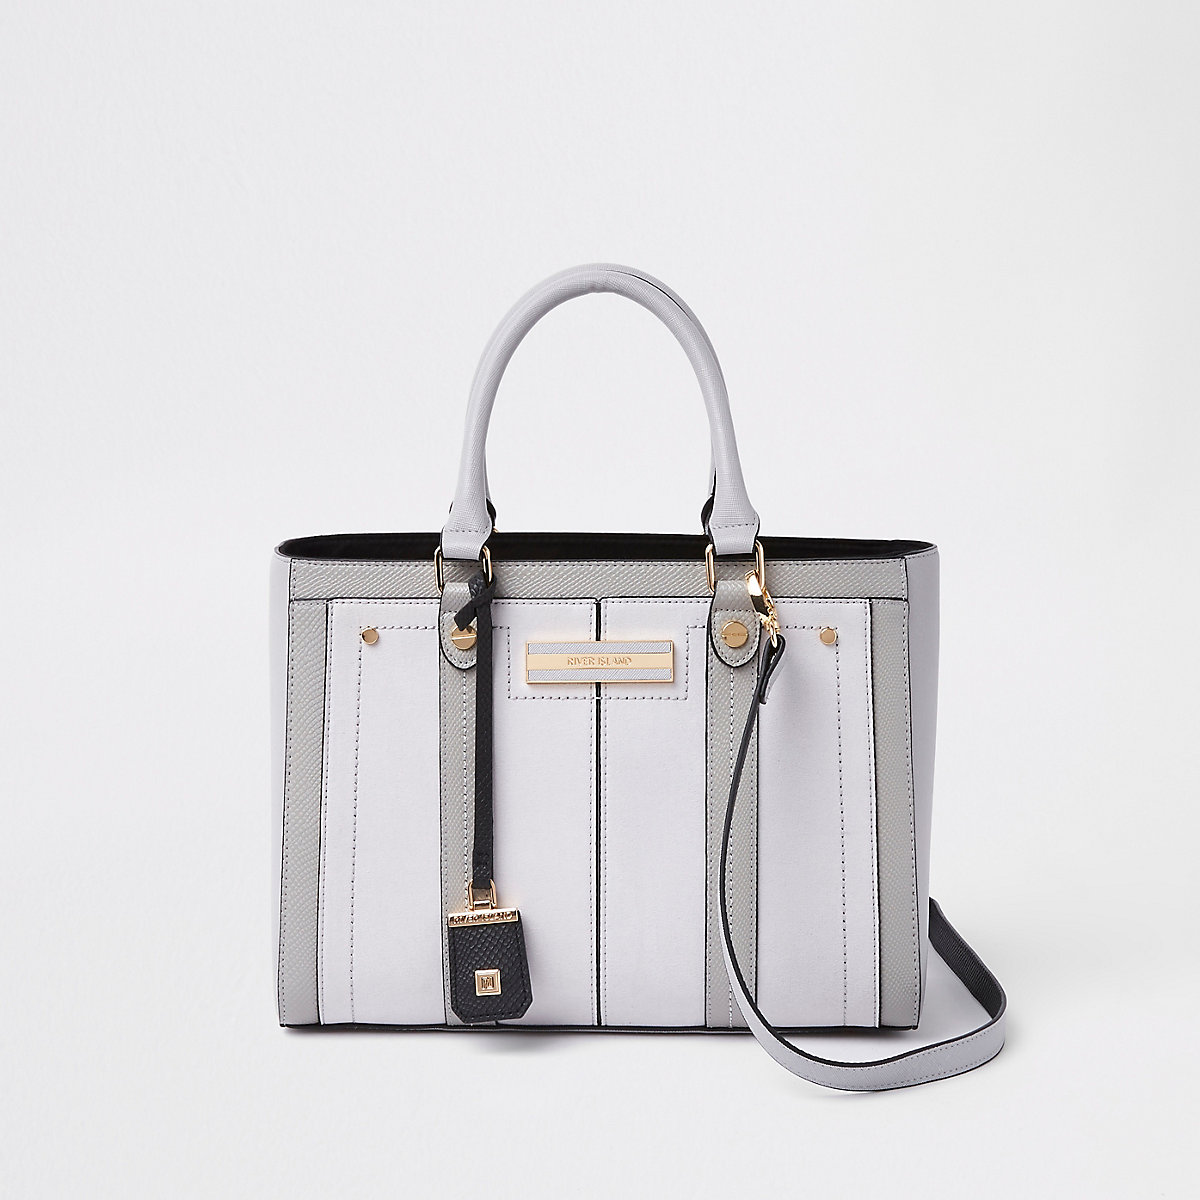 Light grey faux leather boxy tote bag